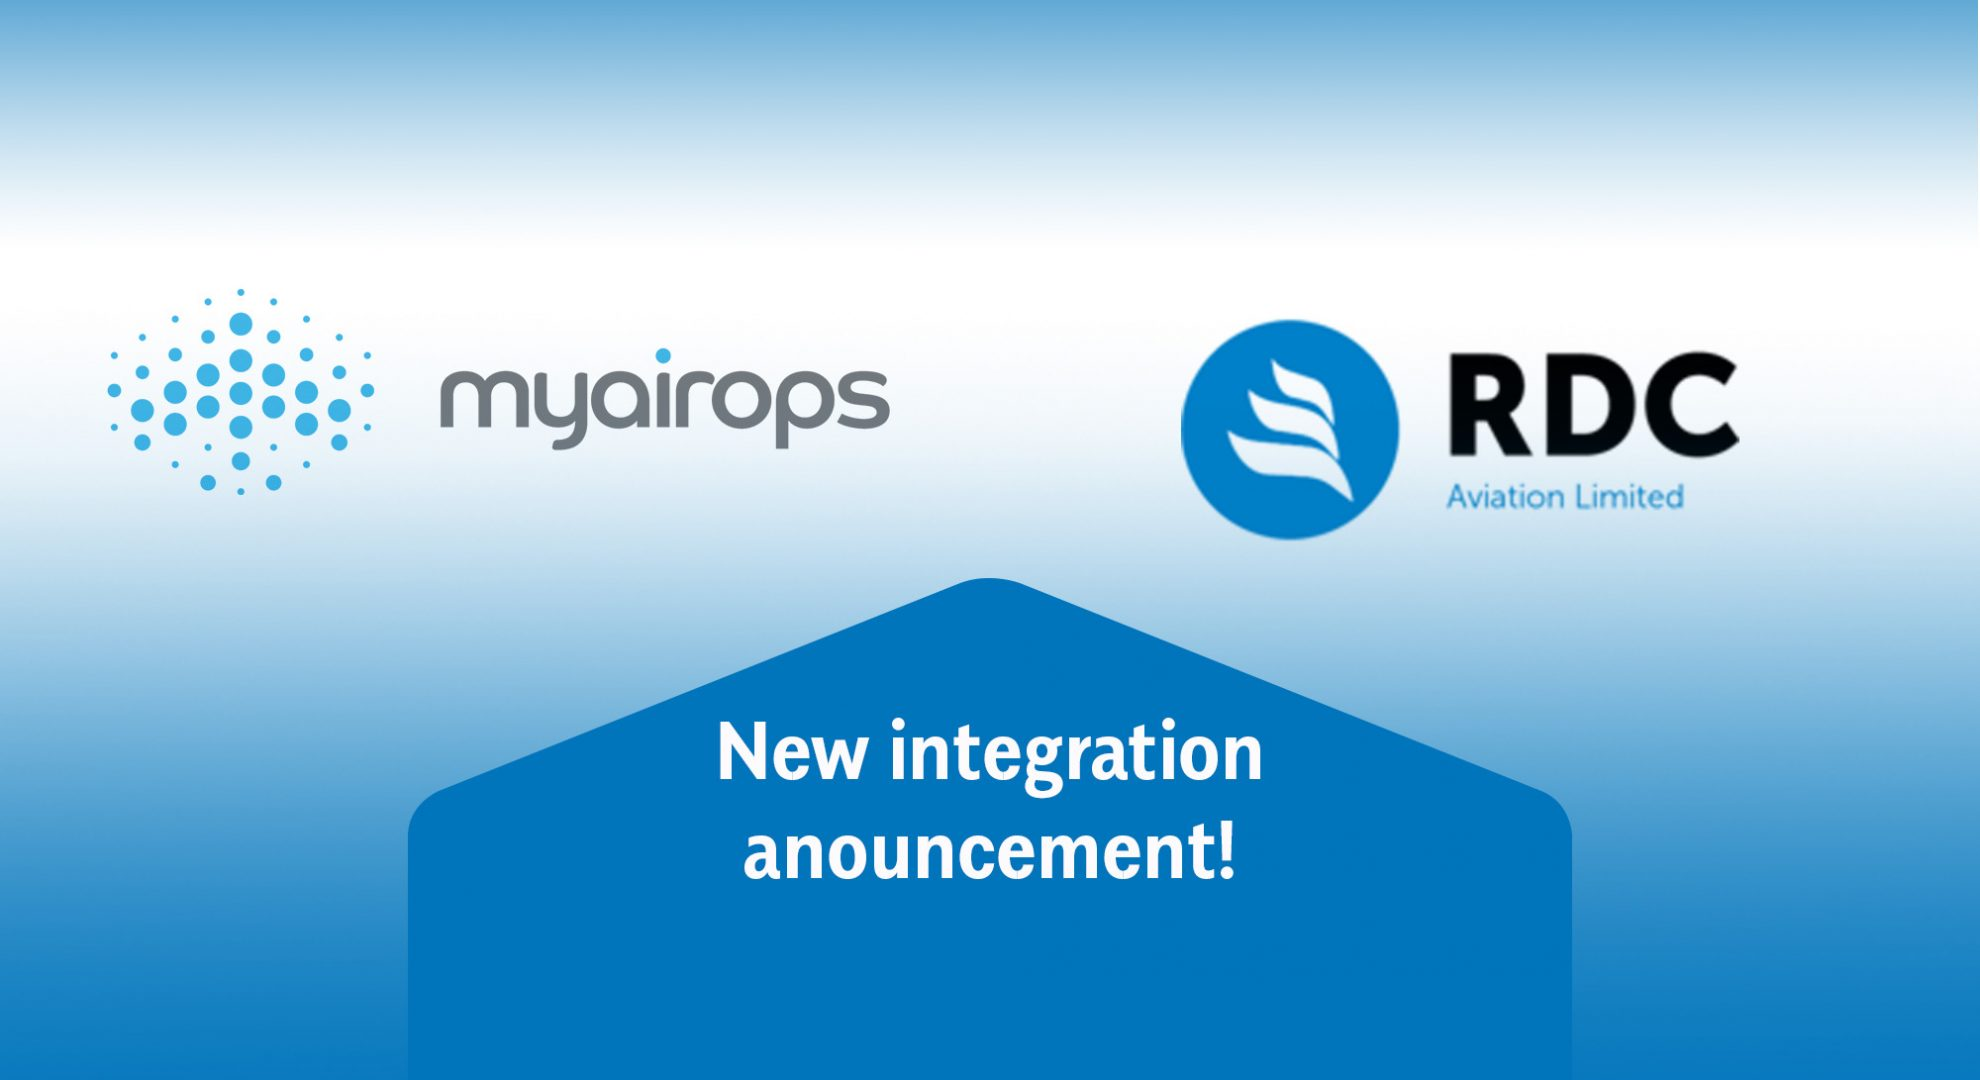 myairops announce new partnership at NBAA 2019 header image